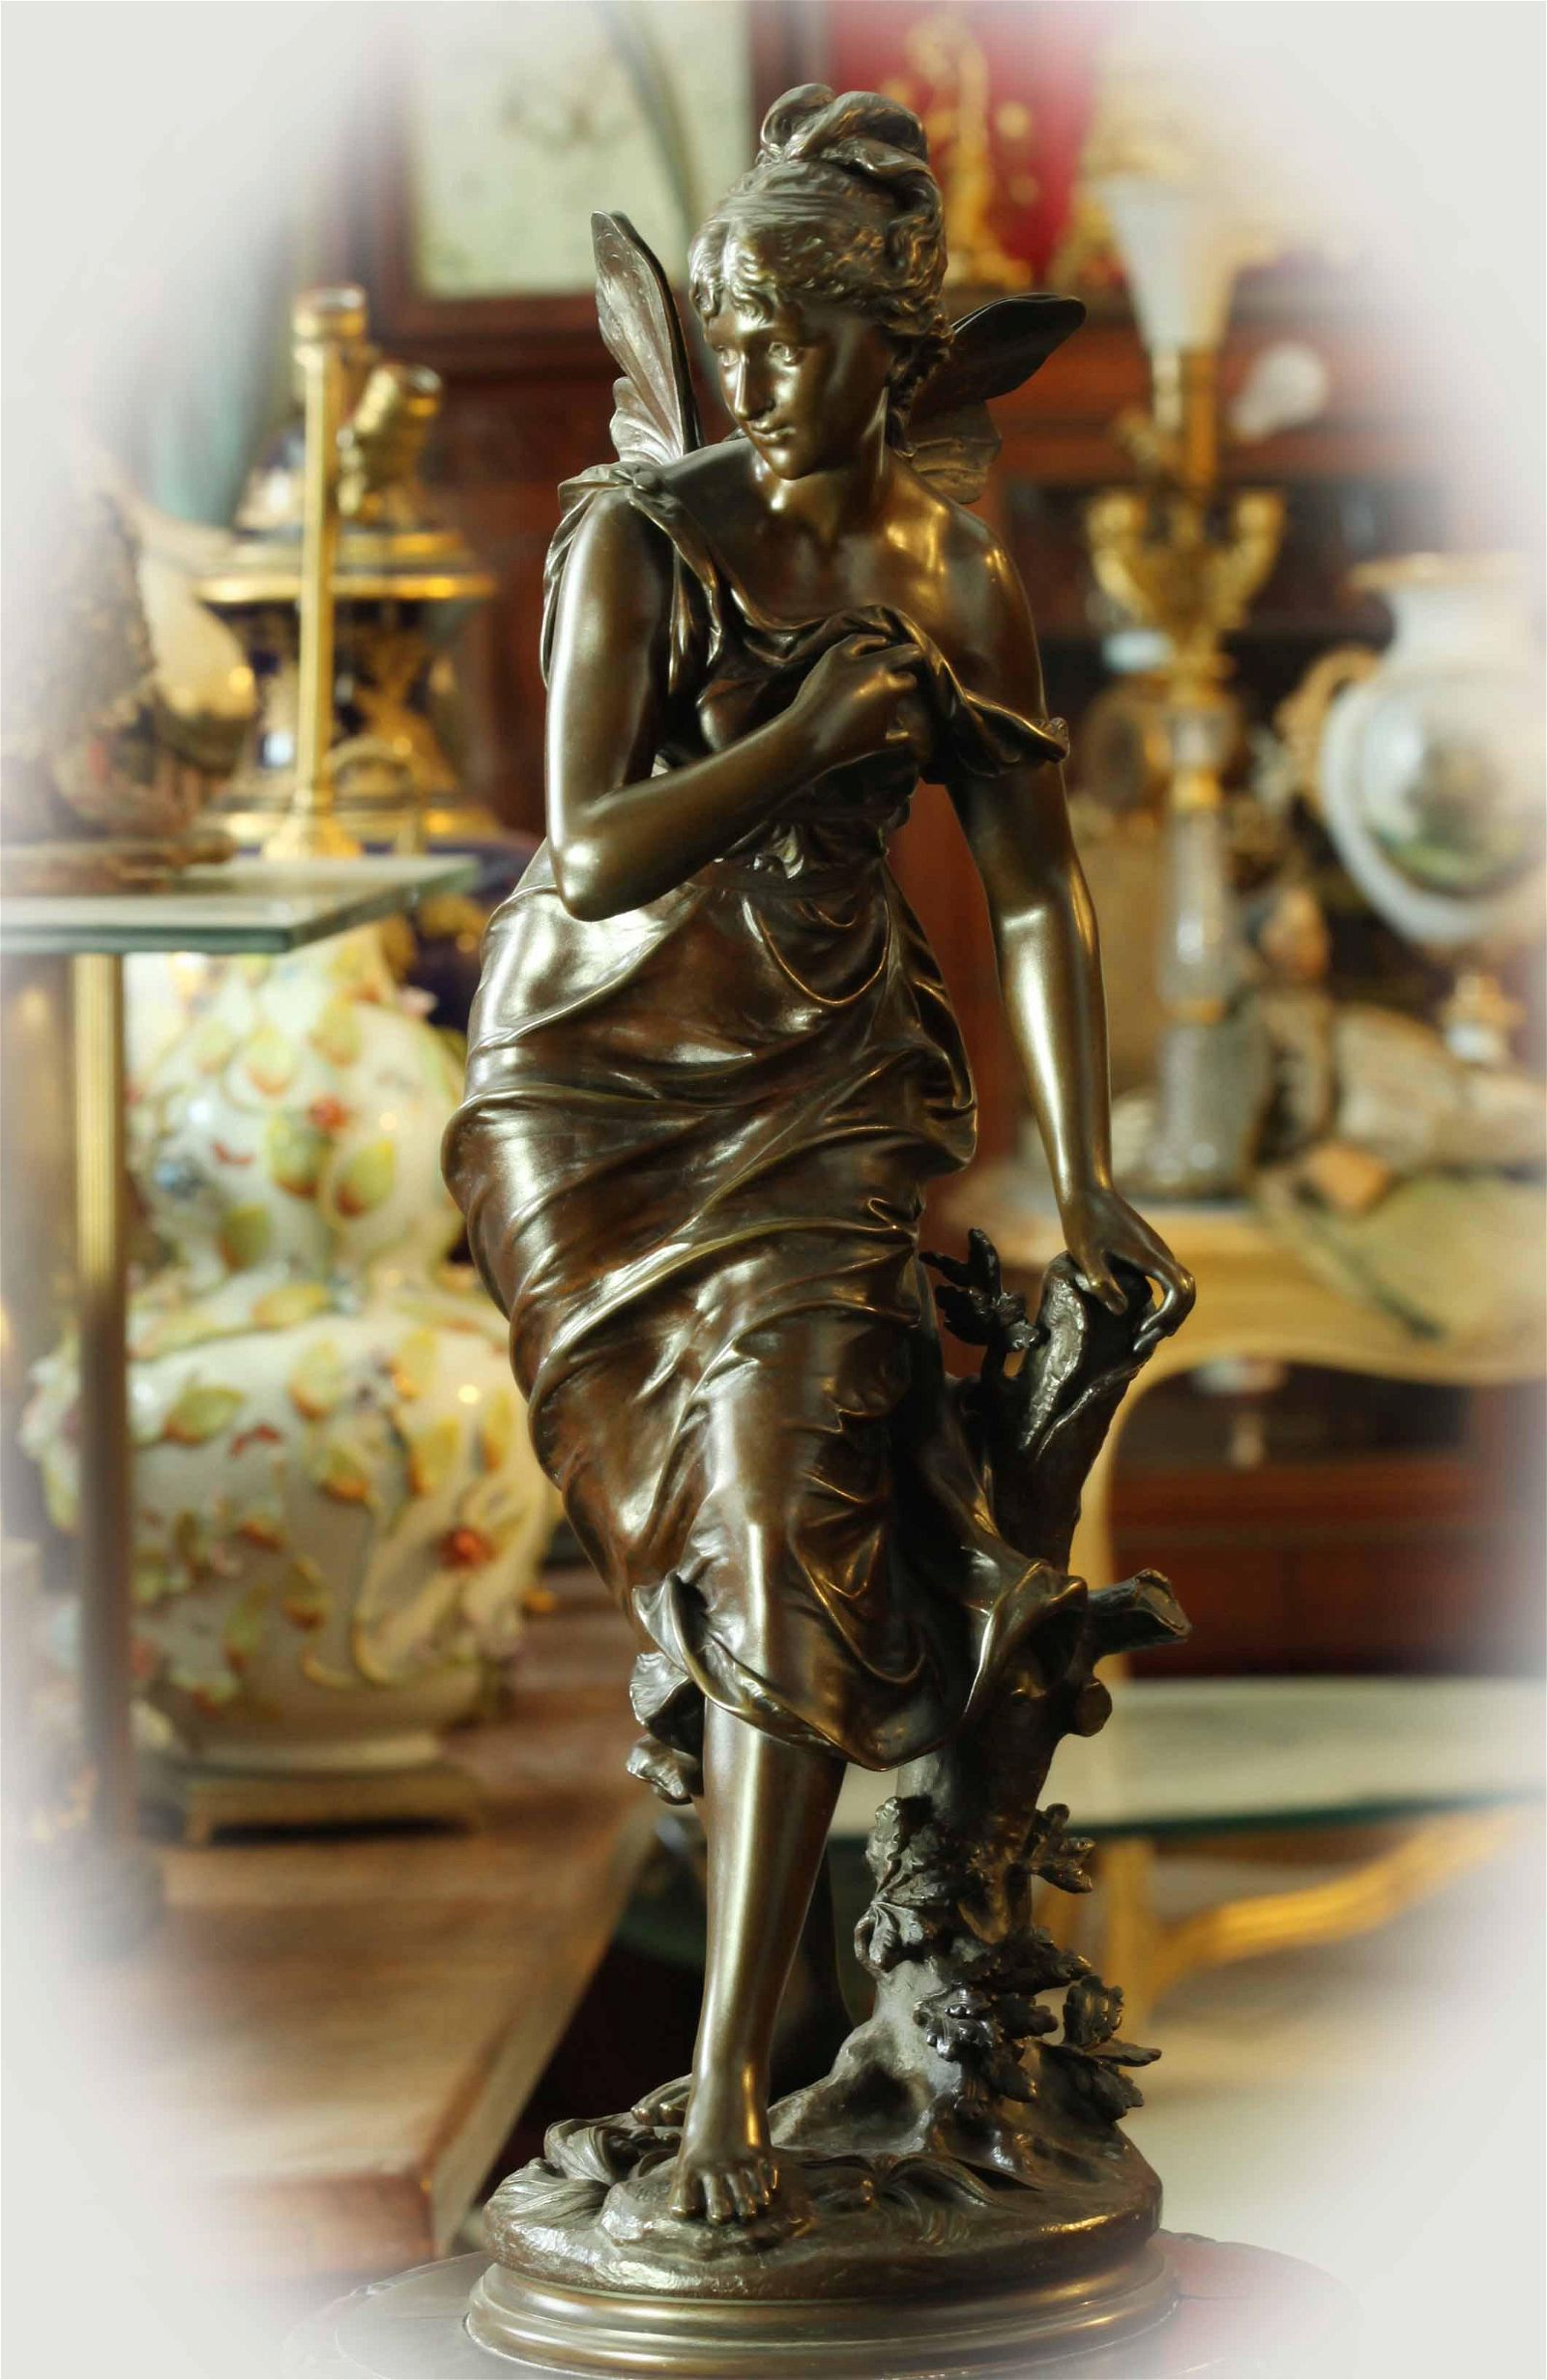 19th century brown patina bronze sculpture, signed